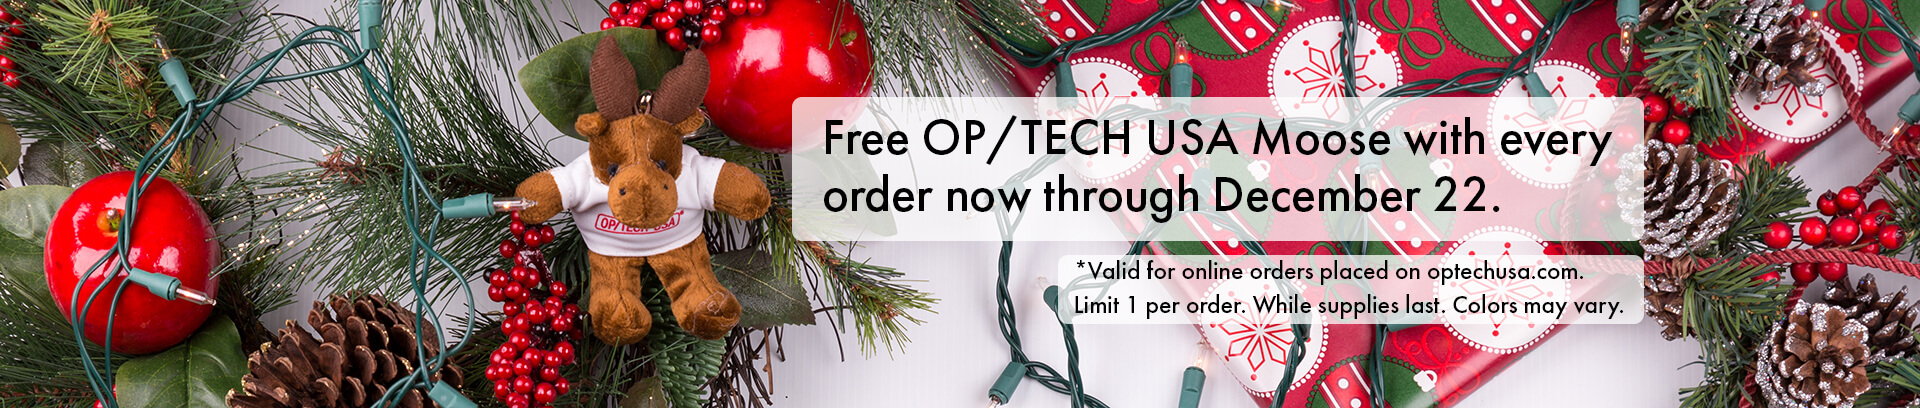 *Valid for online orders placed on optechusa.com. Limit 1 per order. While supplies last. Colors may vary.